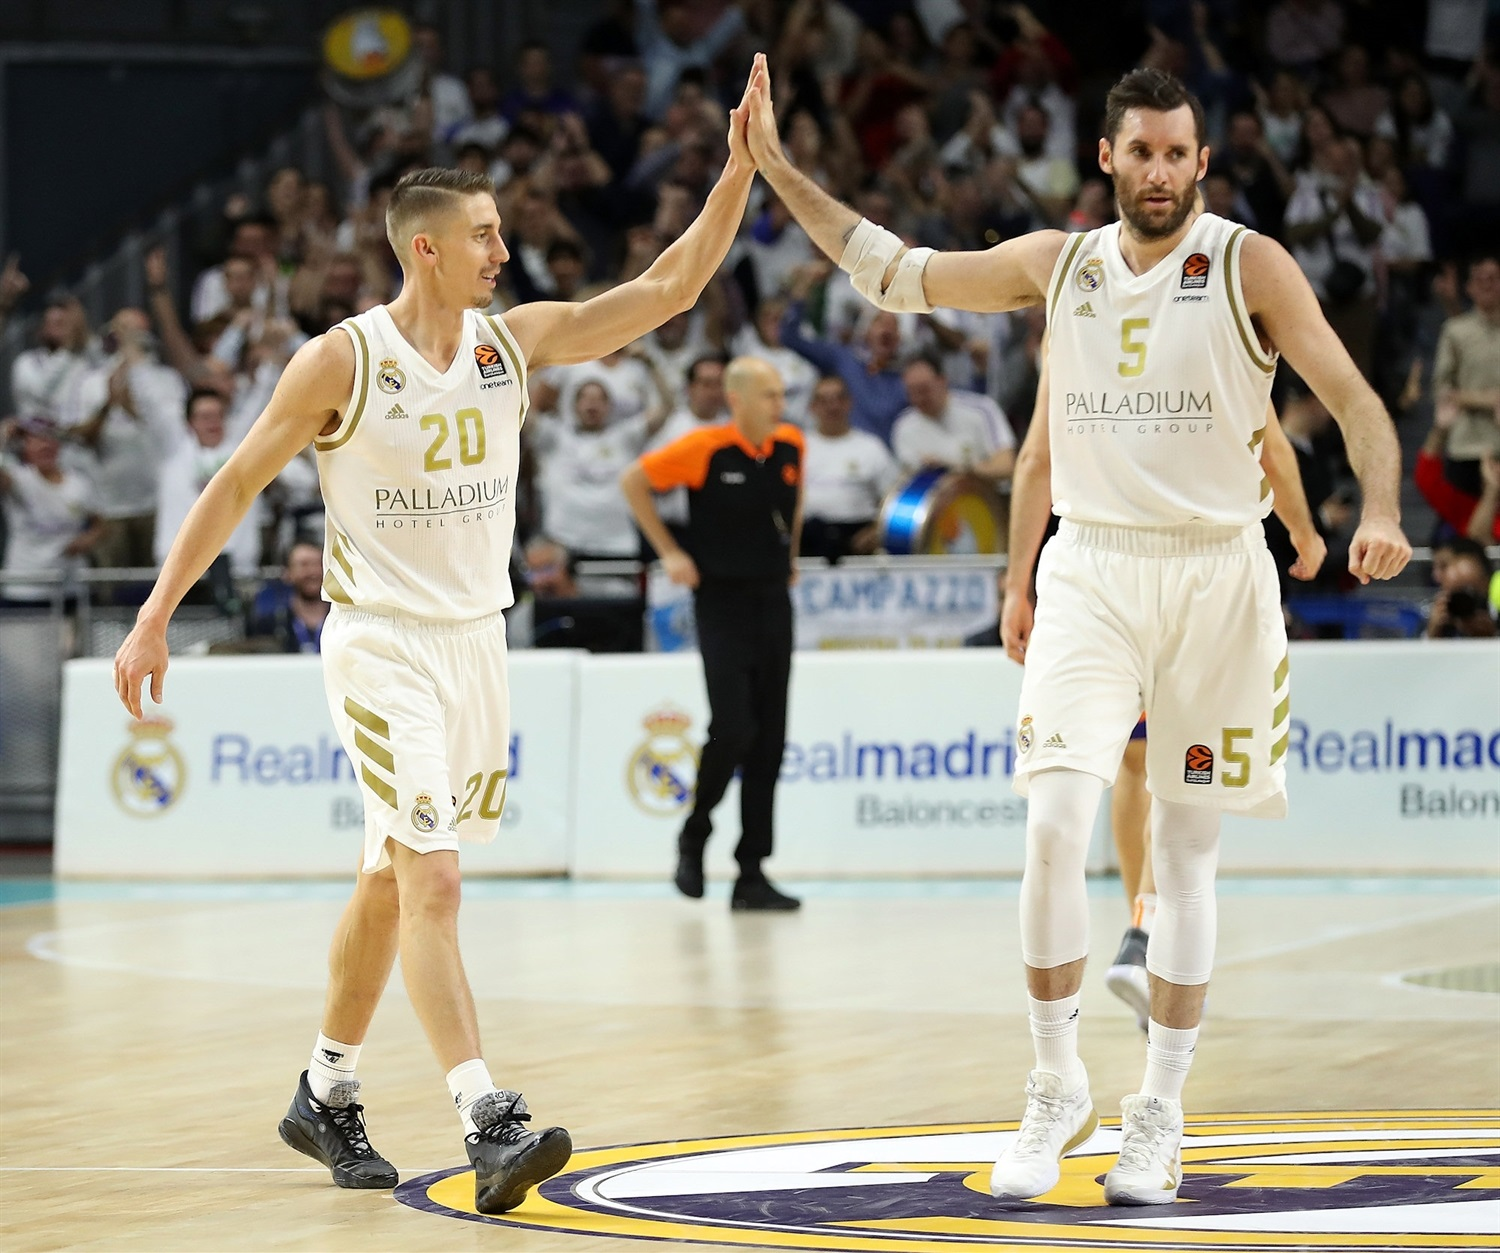 Rudy Fernandez celebrates - Real Madrid - EB19